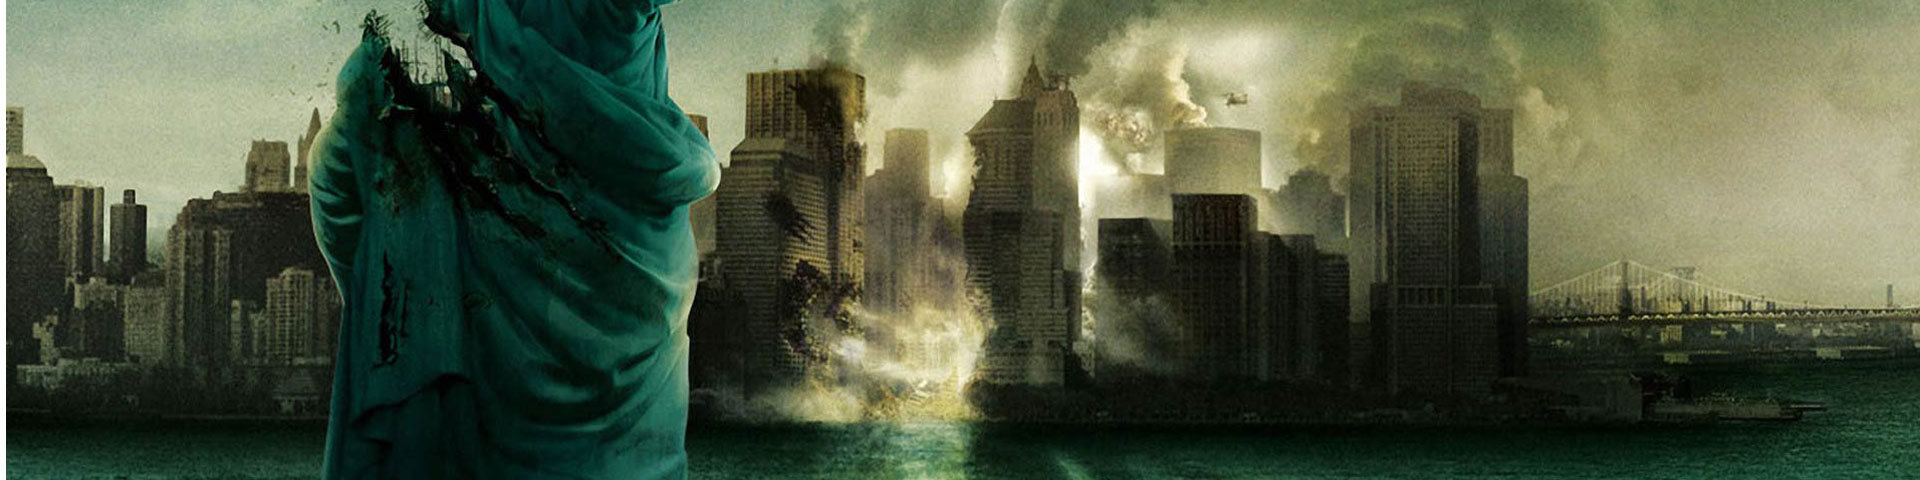 The ruined New York skyline after being crushed by a giant monster.